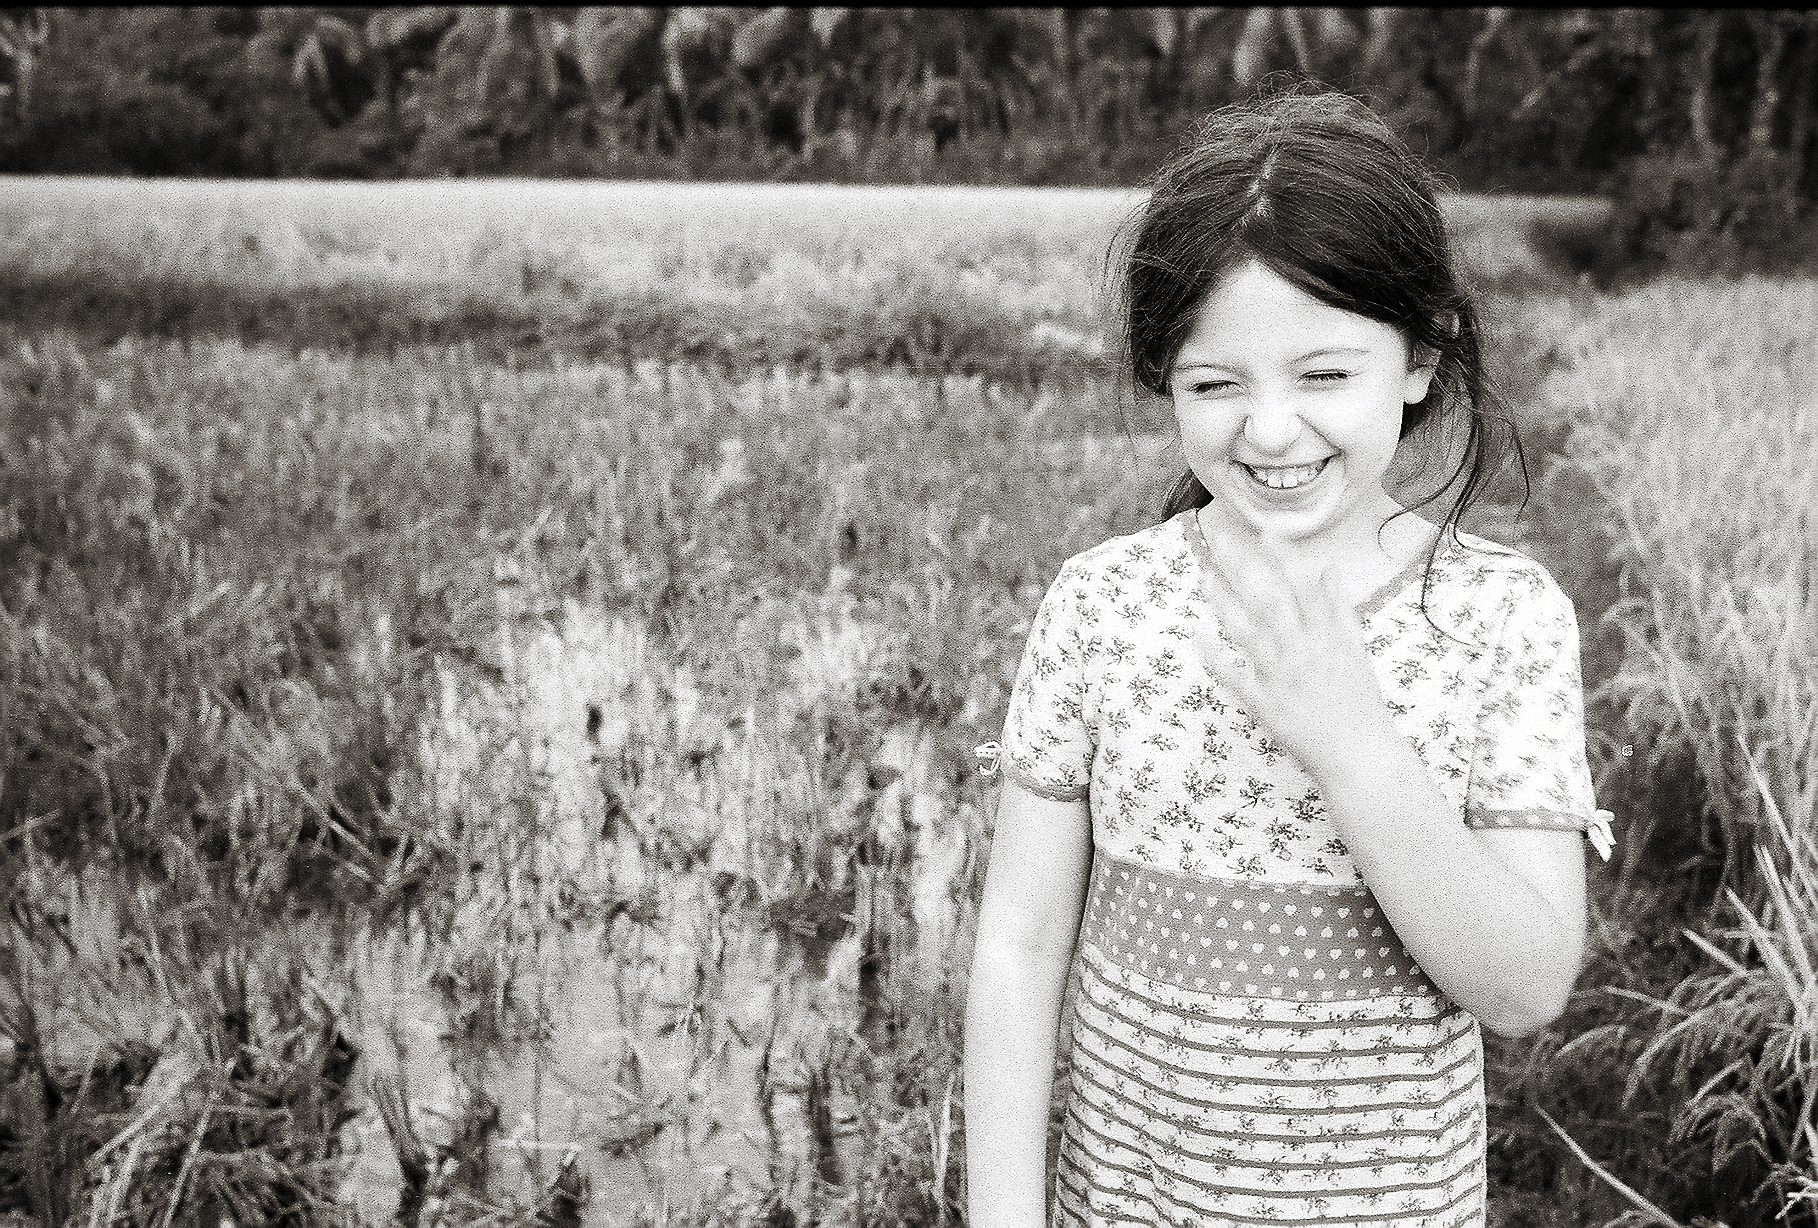 Addie in Kerala rice paddy 35mm